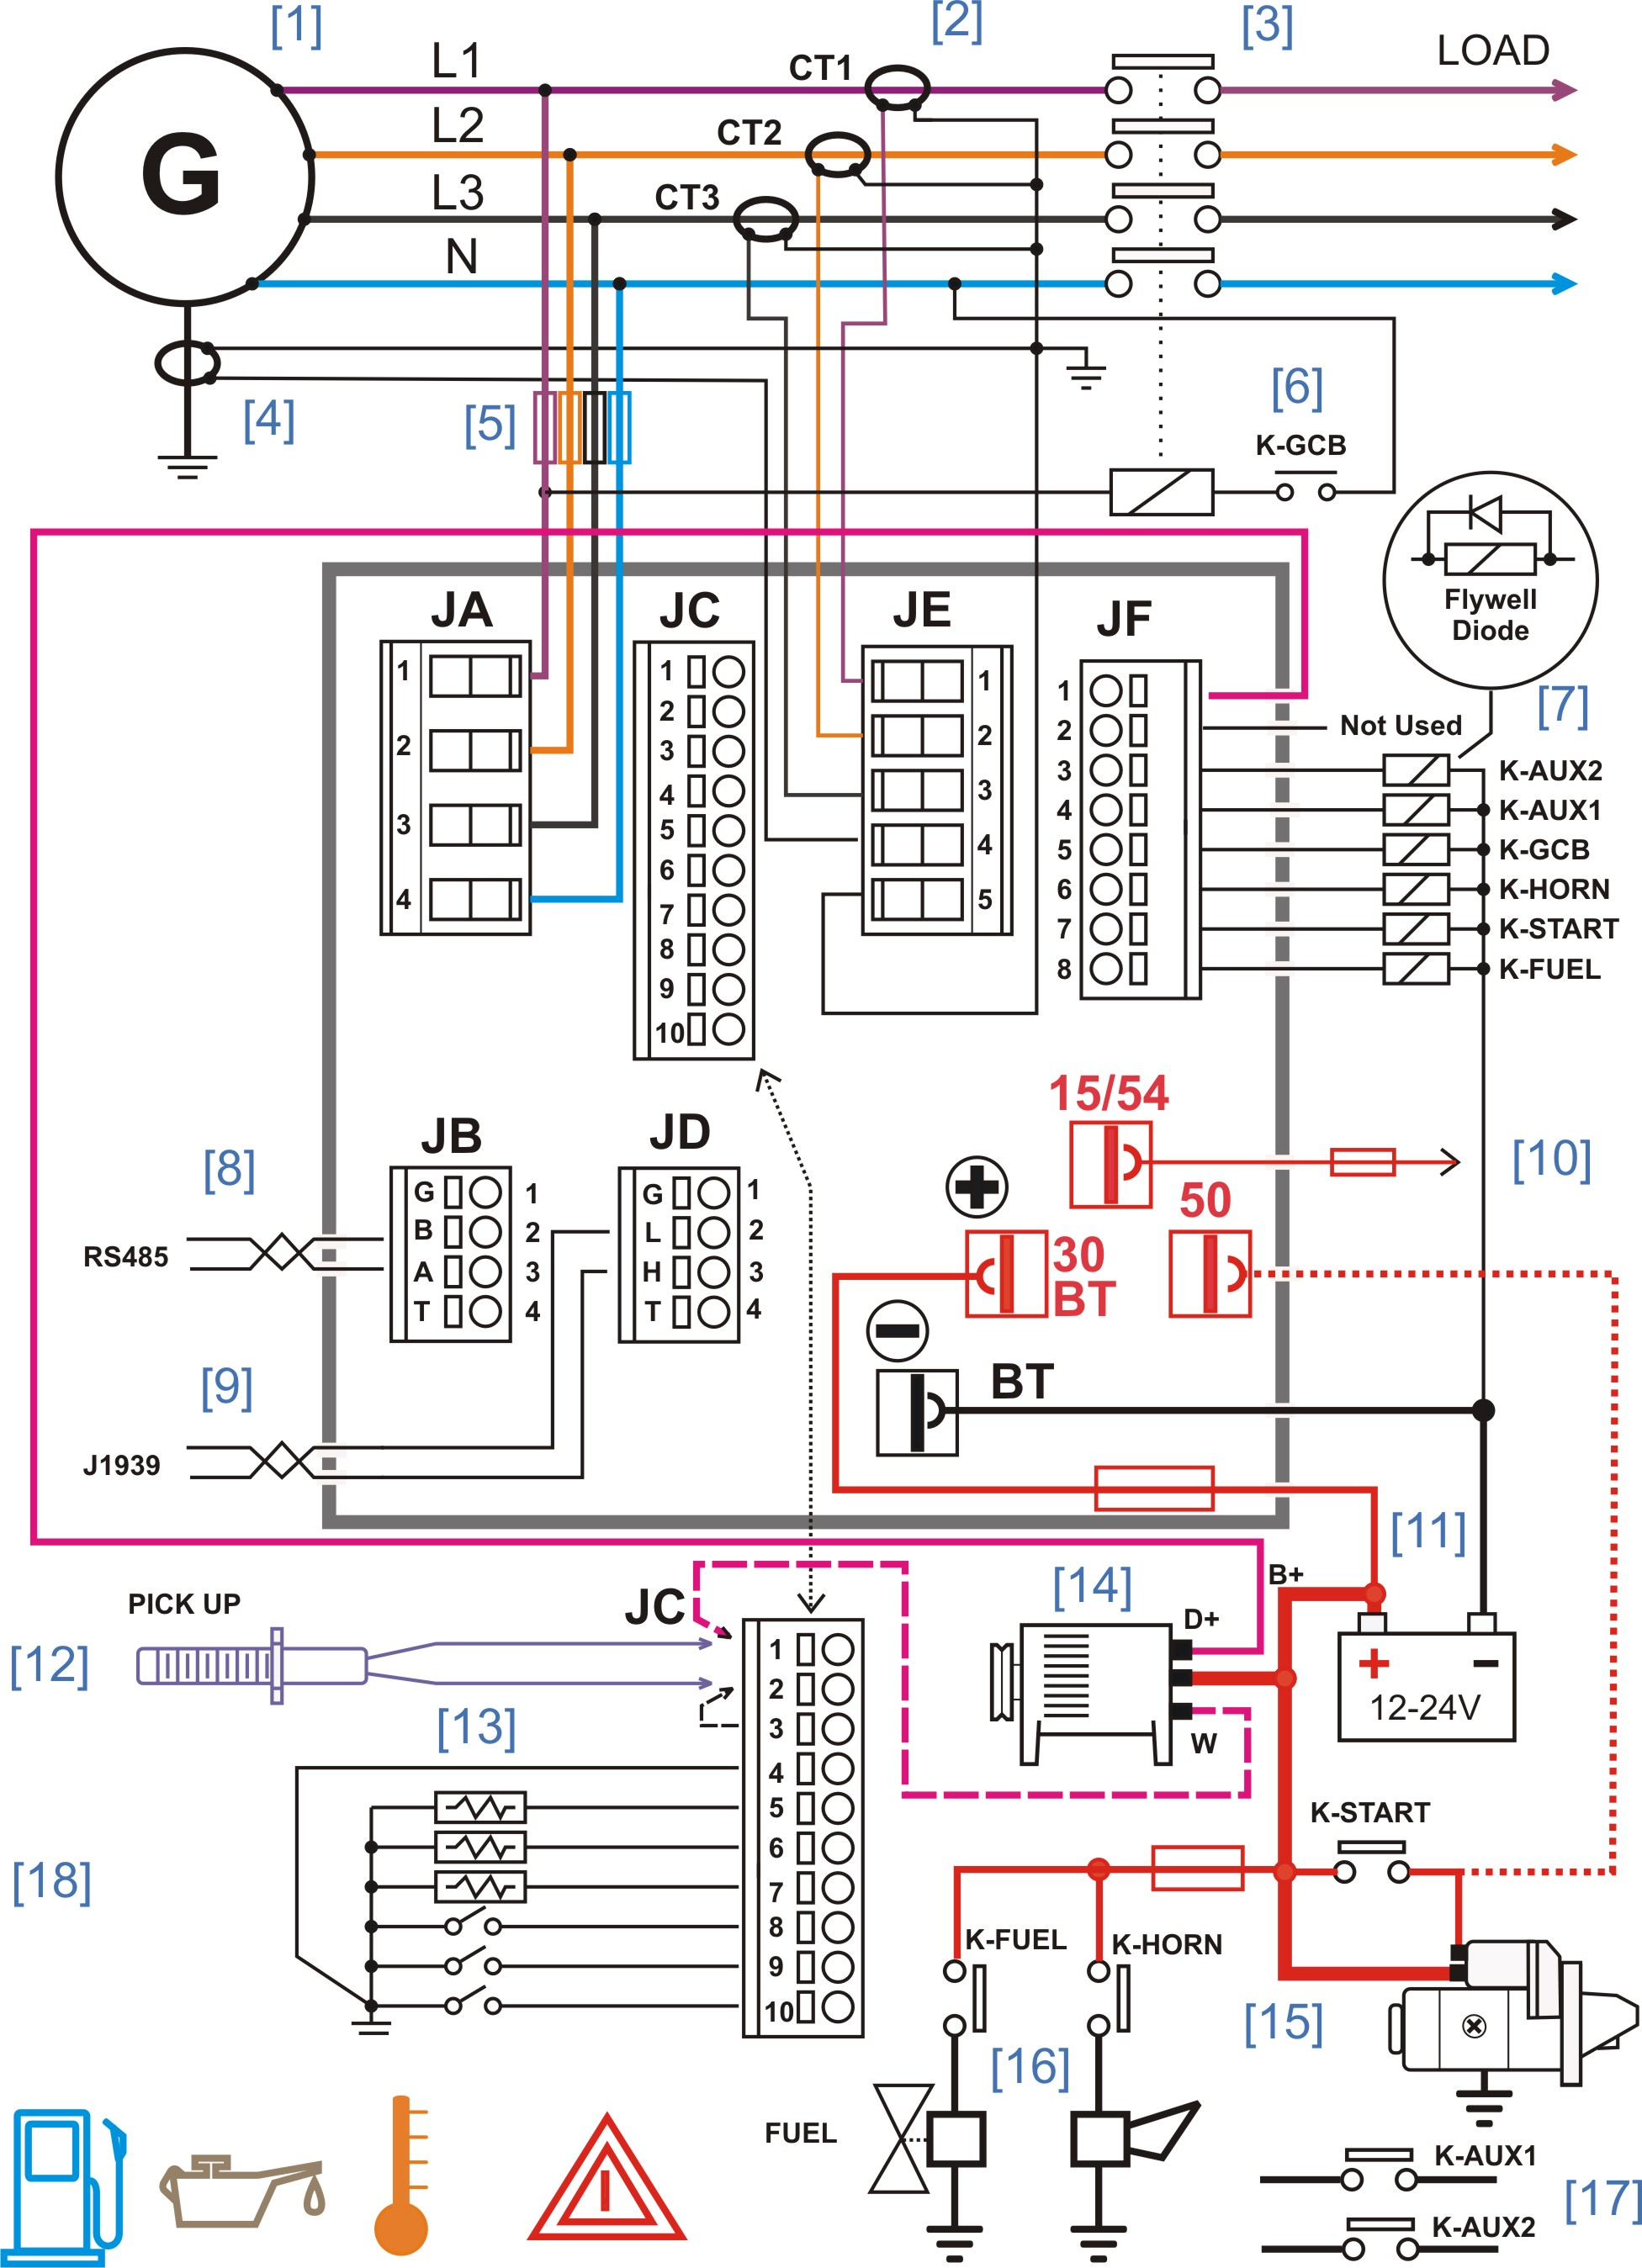 Diagram Furnace Control Board Wiring Diagram Full Version Hd Quality Wiring Diagram Ductdiagram Eyepower It